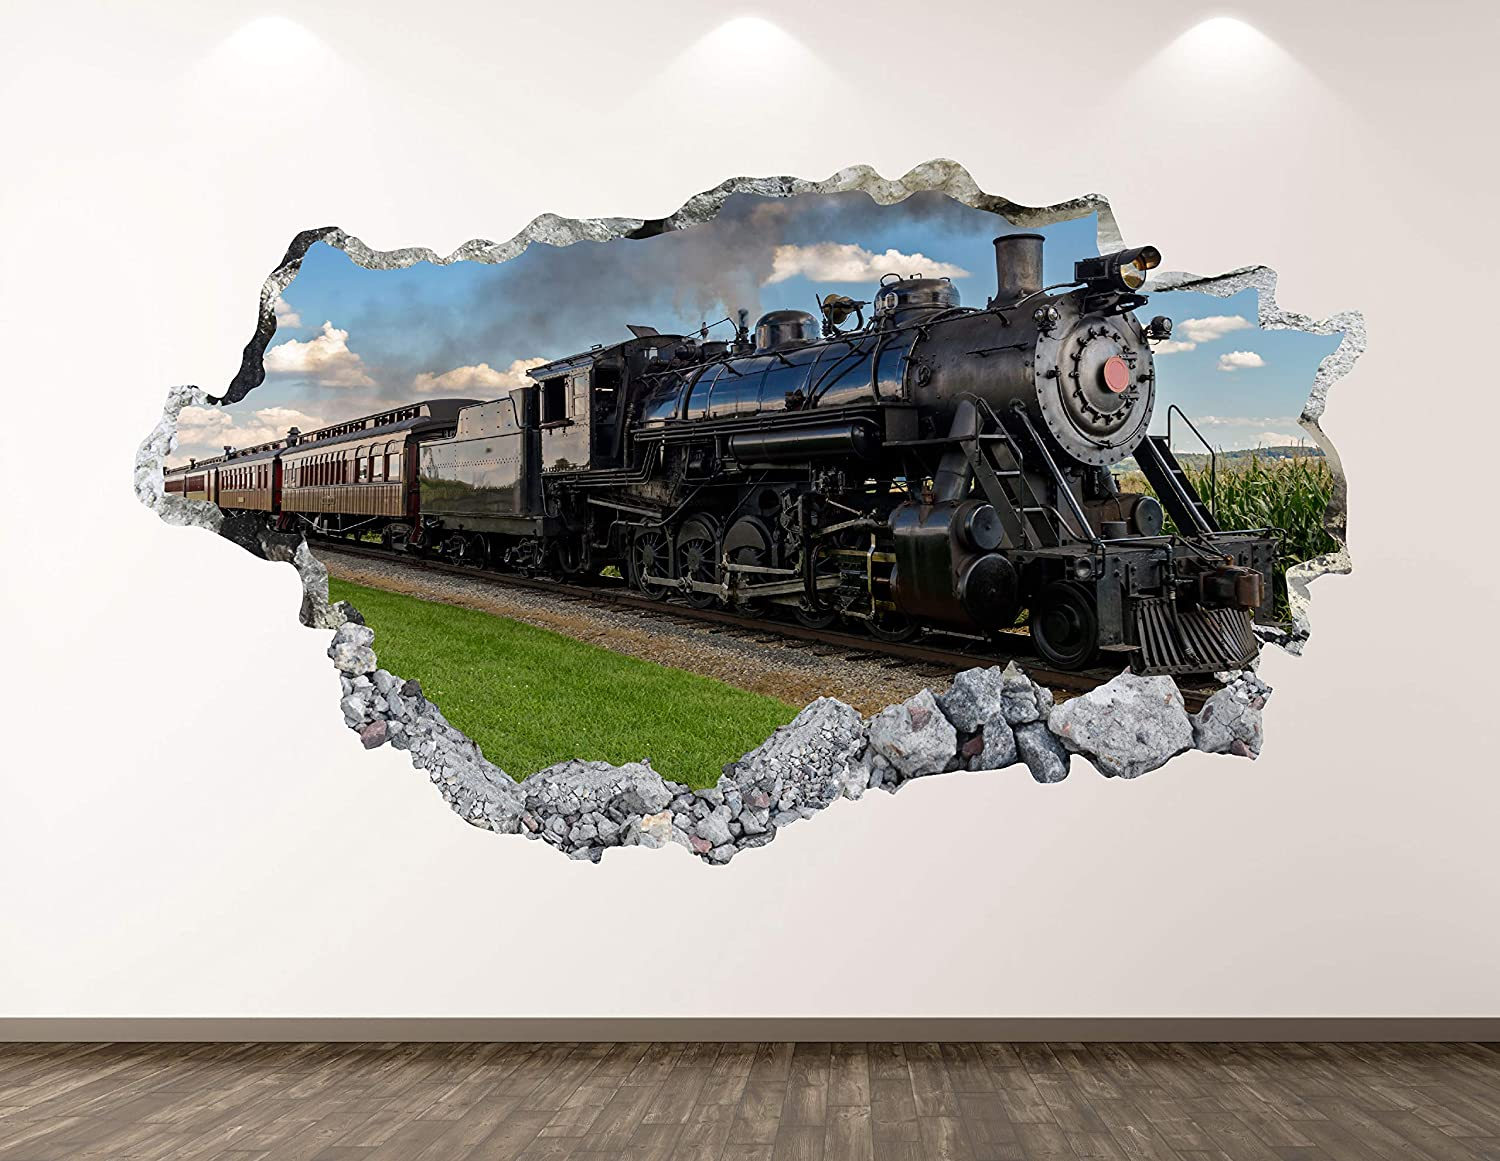 West Mountain Vintage Train Wall Decal Art Decor 3D Smashed Railway Sticker Mural Custom Gift BL118 (42